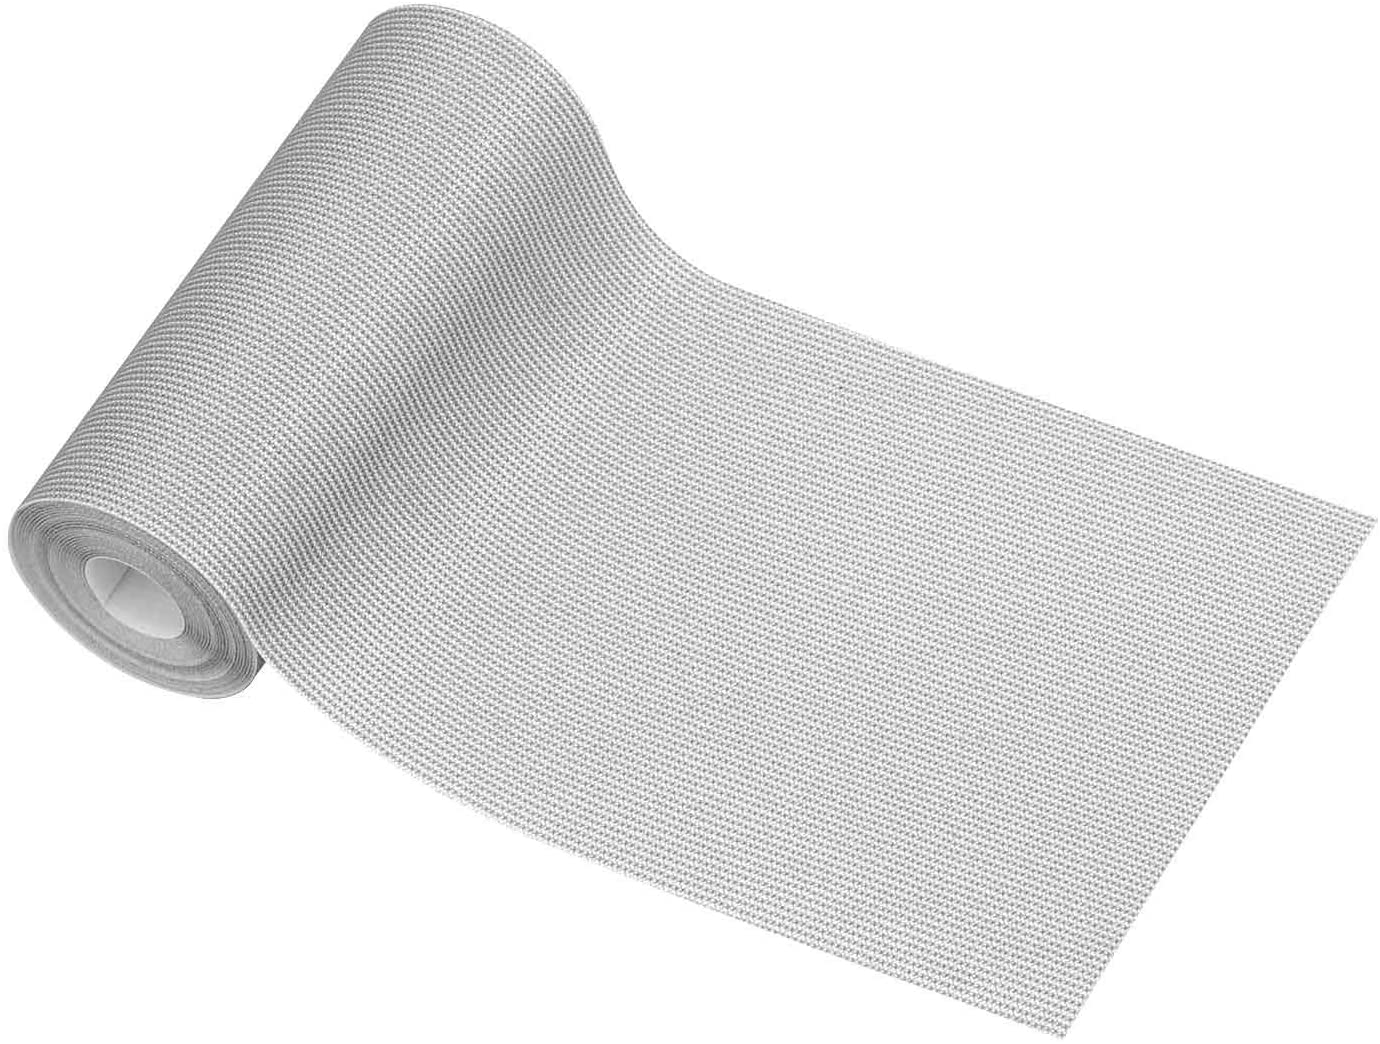 """Nylon Fabric Repair Tape 2.4""""X60"""", Invisible Waterproof Tenacious Adherence Tape Iron-on Patch for Jeans Pizex Tent (Light Gray)"""